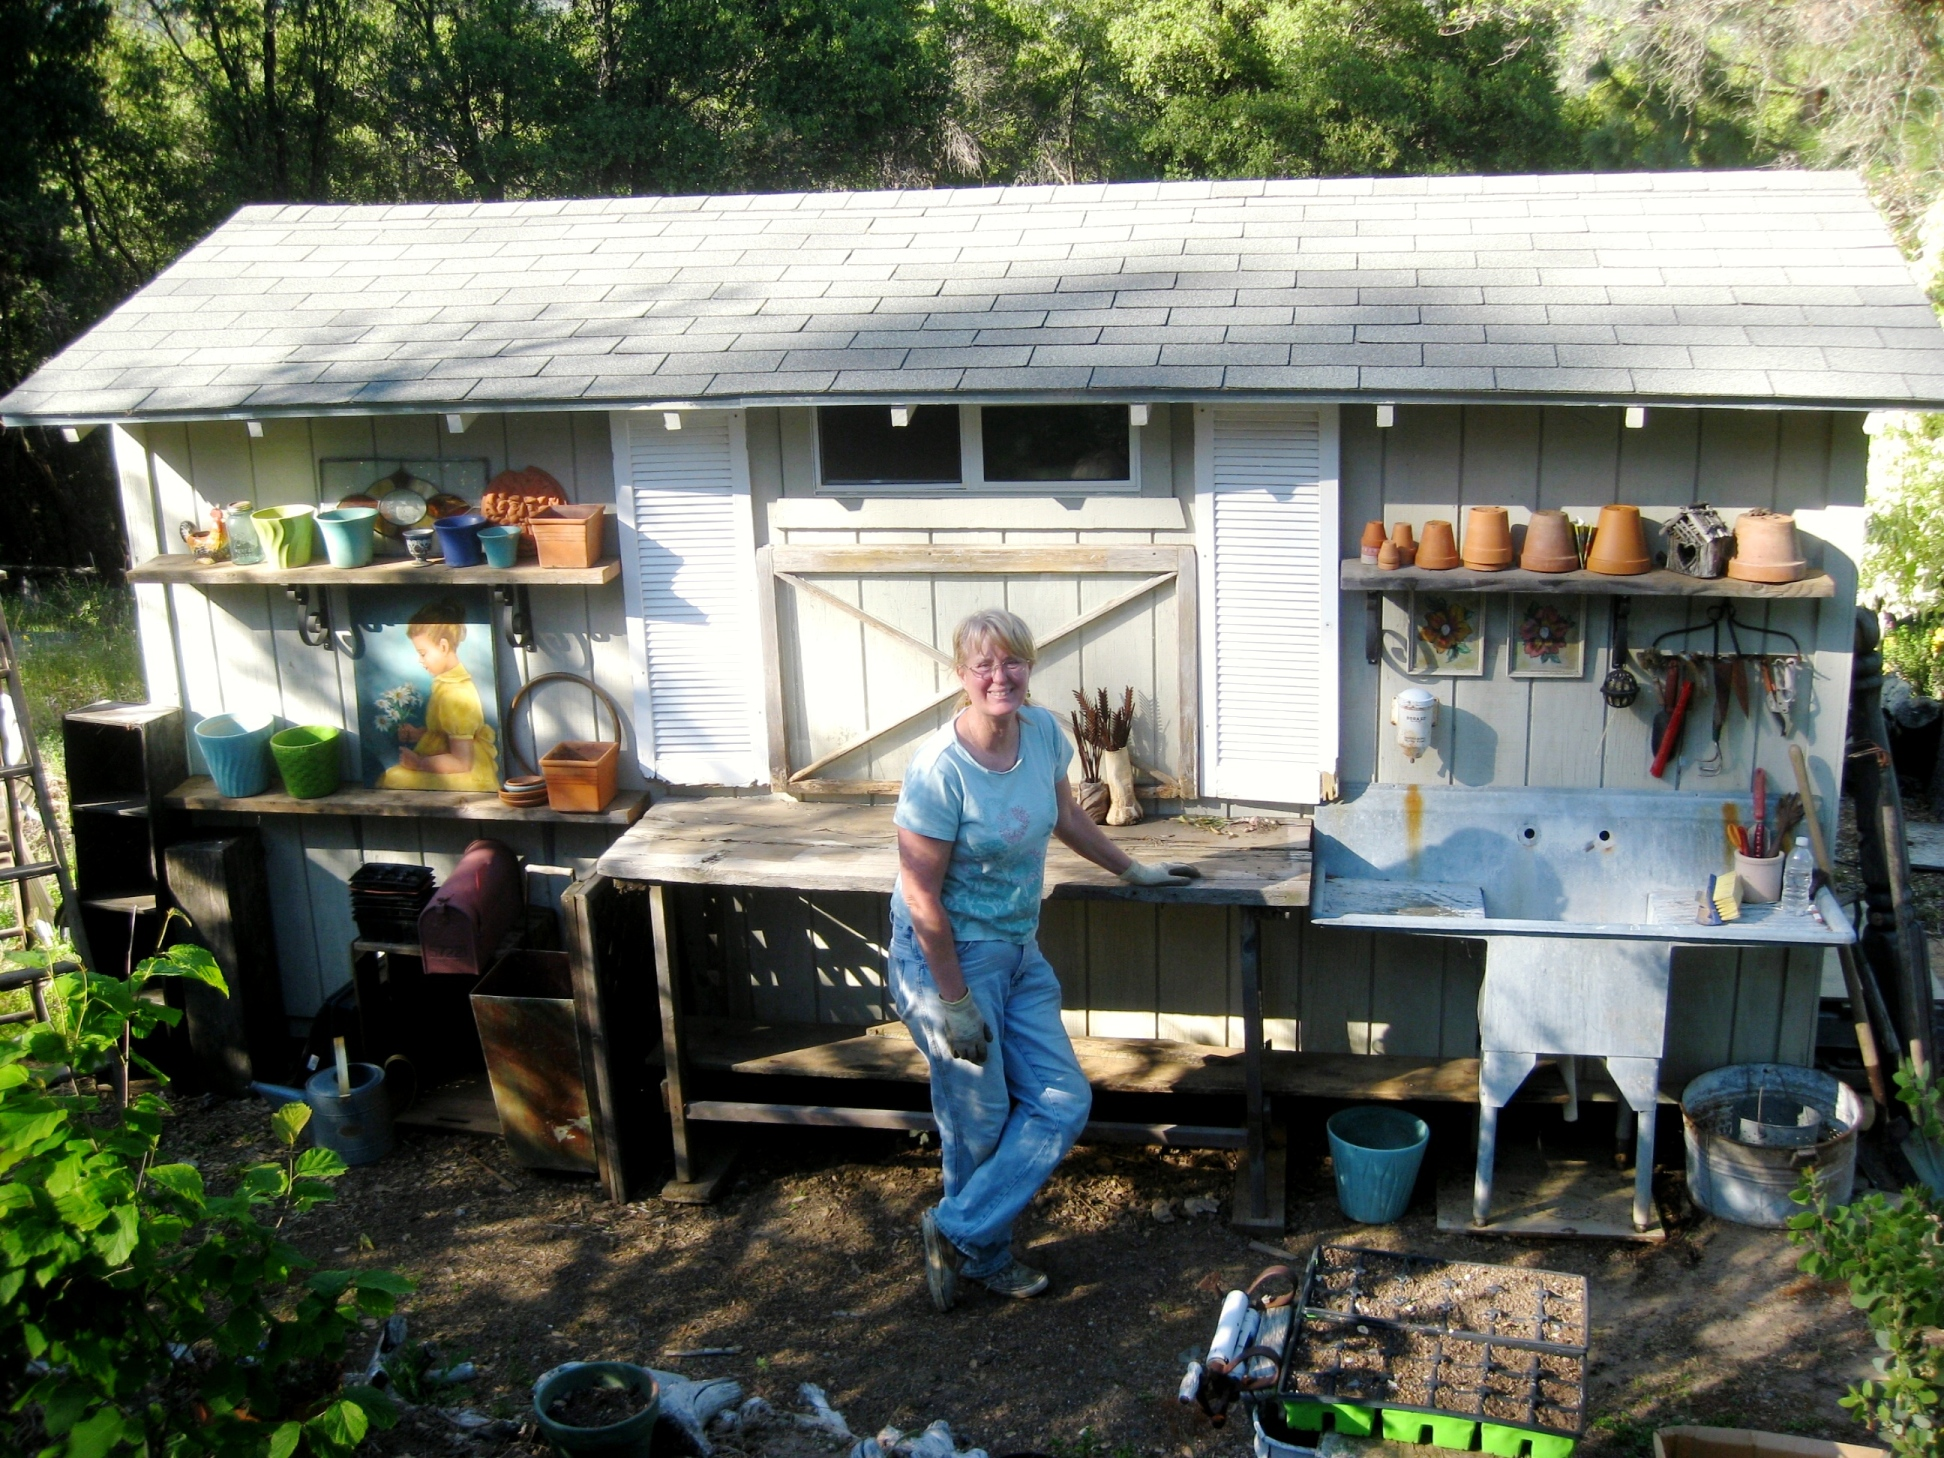 Sue Langley's Potting shed